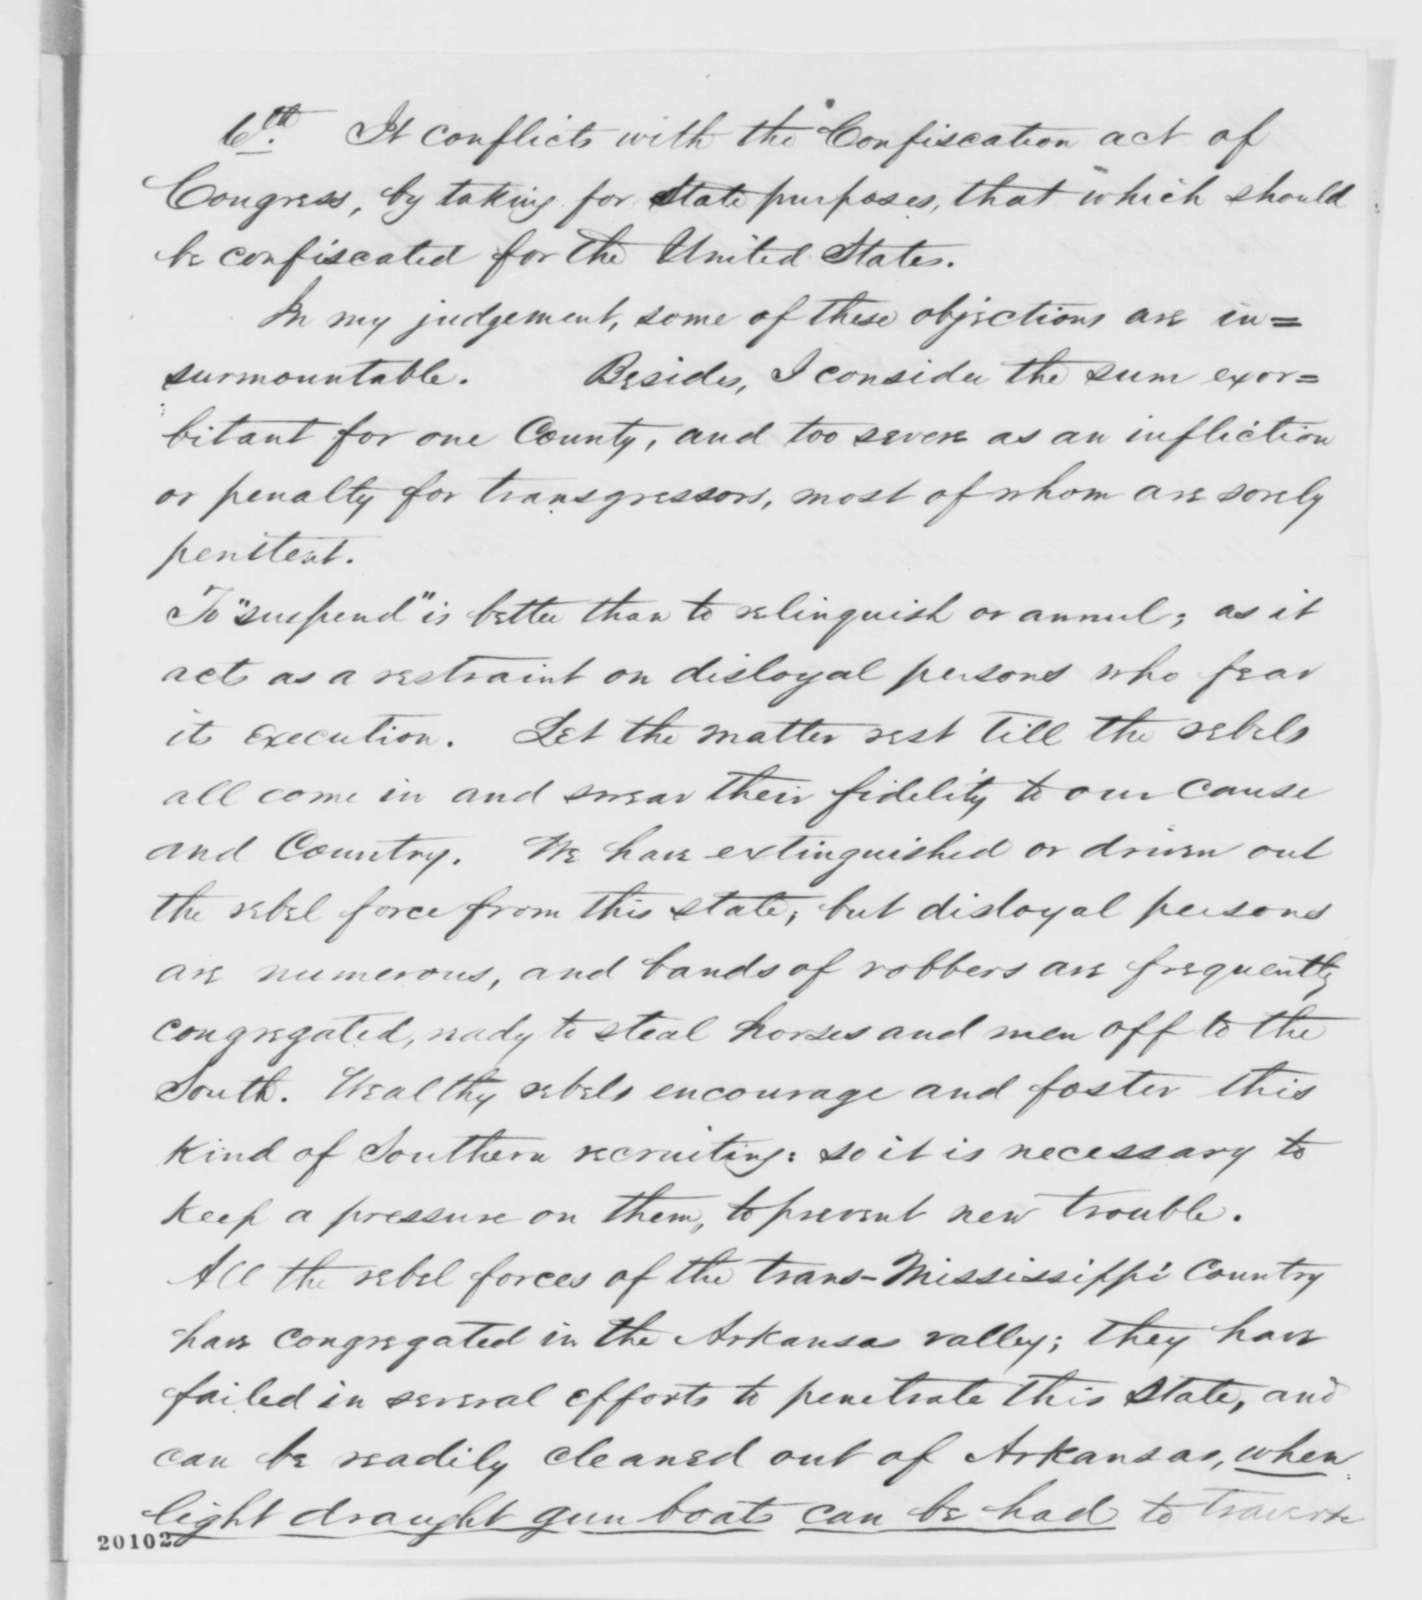 Samuel R. Curtis to Abraham Lincoln, Friday, December 12, 1862  (Military affairs in Missouri)